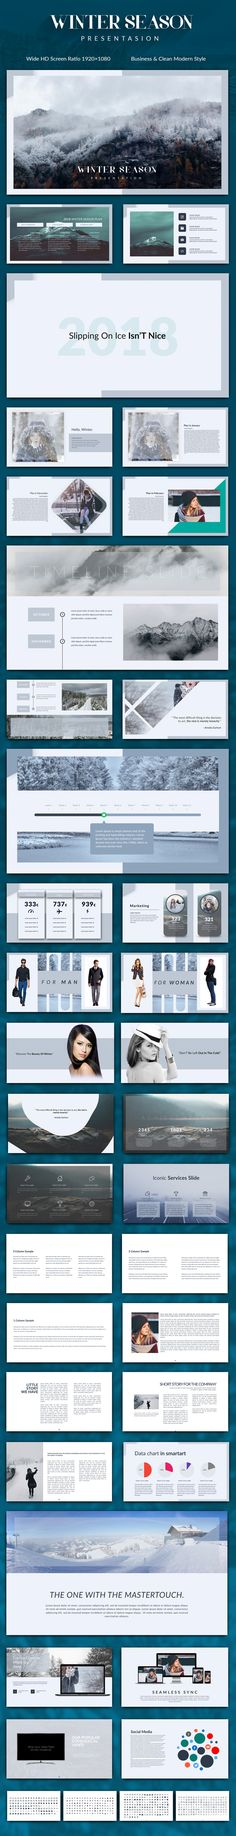 Montblanc Creative Presentation Pinterest Presentation templates - winter powerpoint template